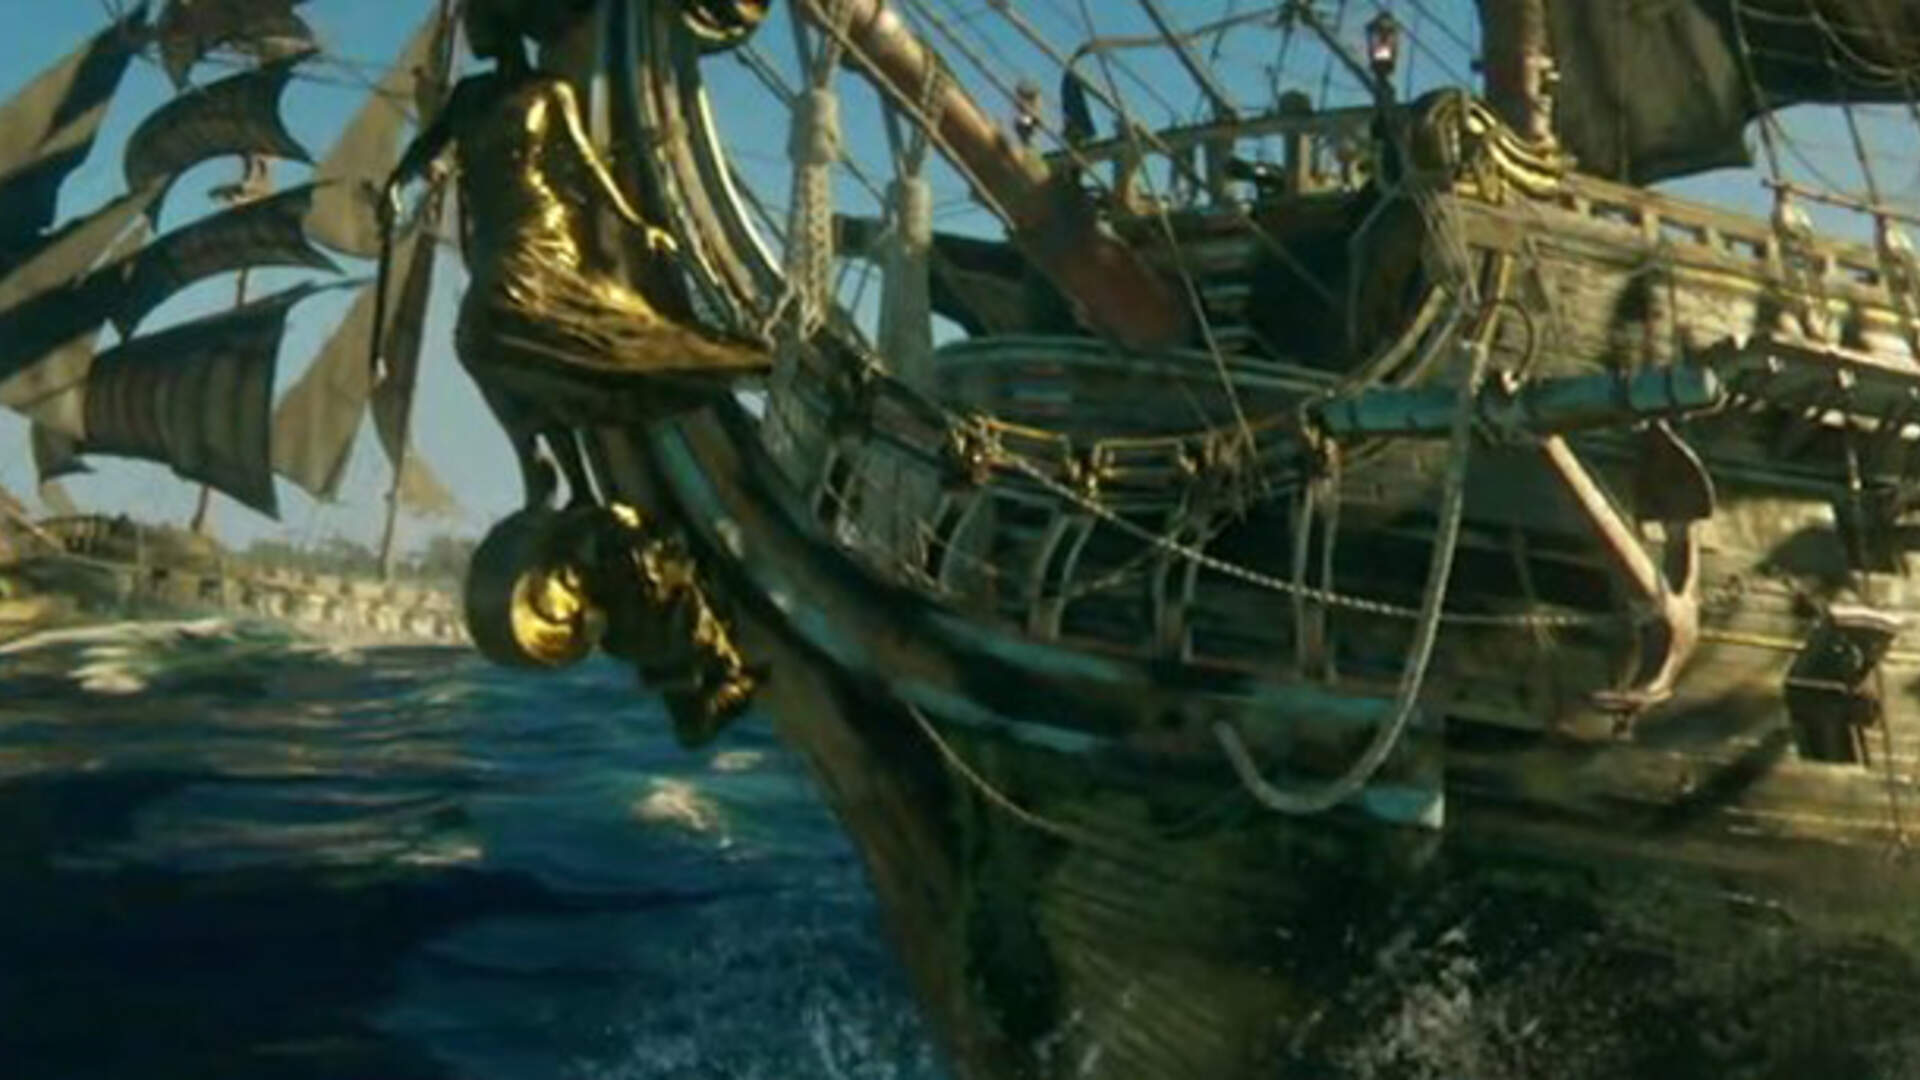 Skull and Bones Will Include Dynamic Weather, Online Ship Battles When it Releases in 2019